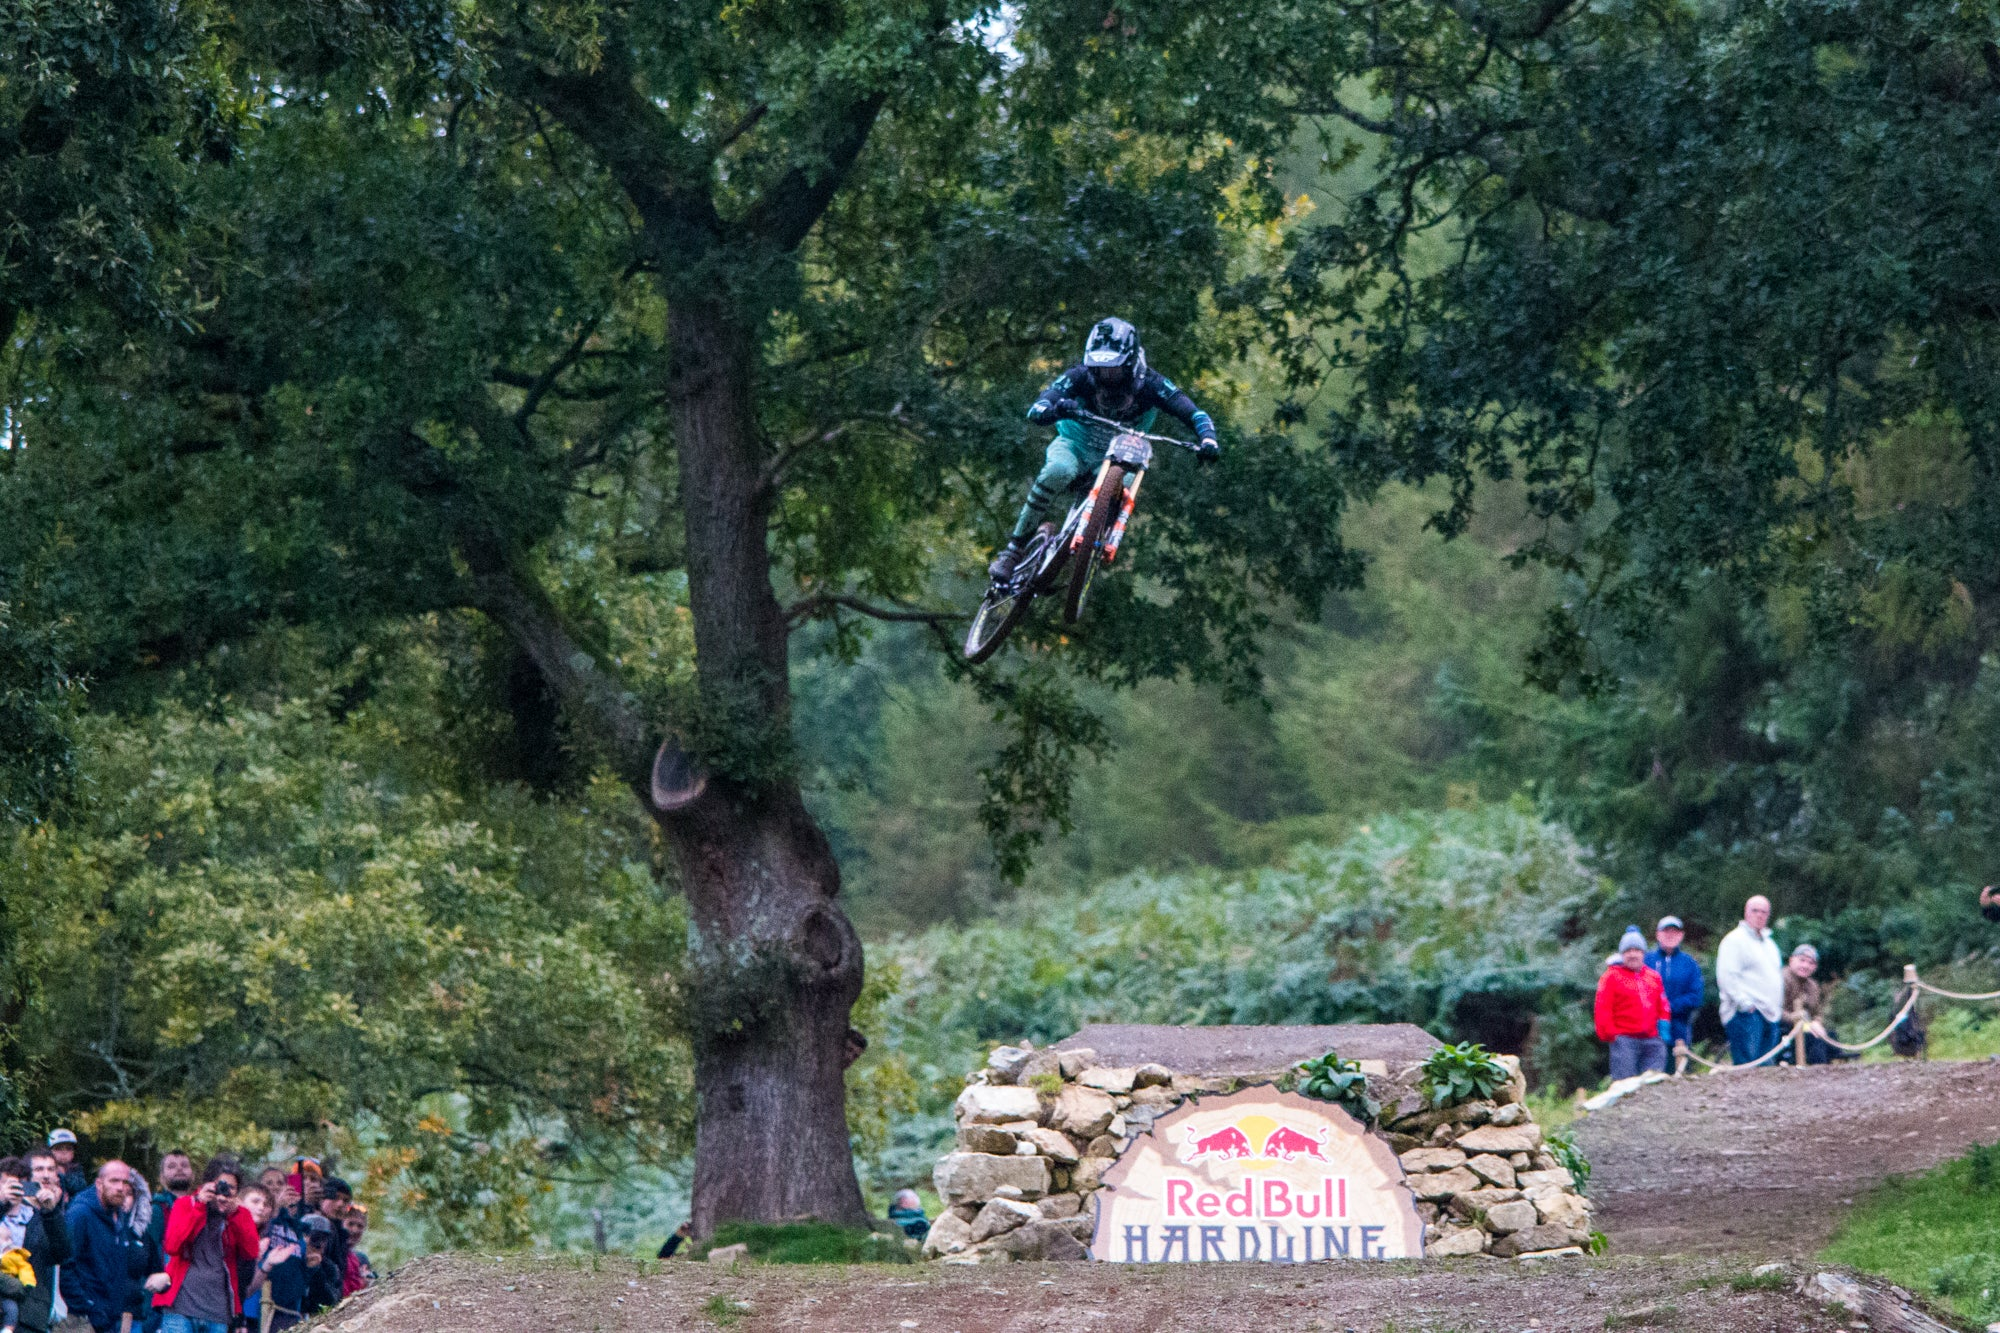 Bernard Kerr at Red Bull Hardline 2019